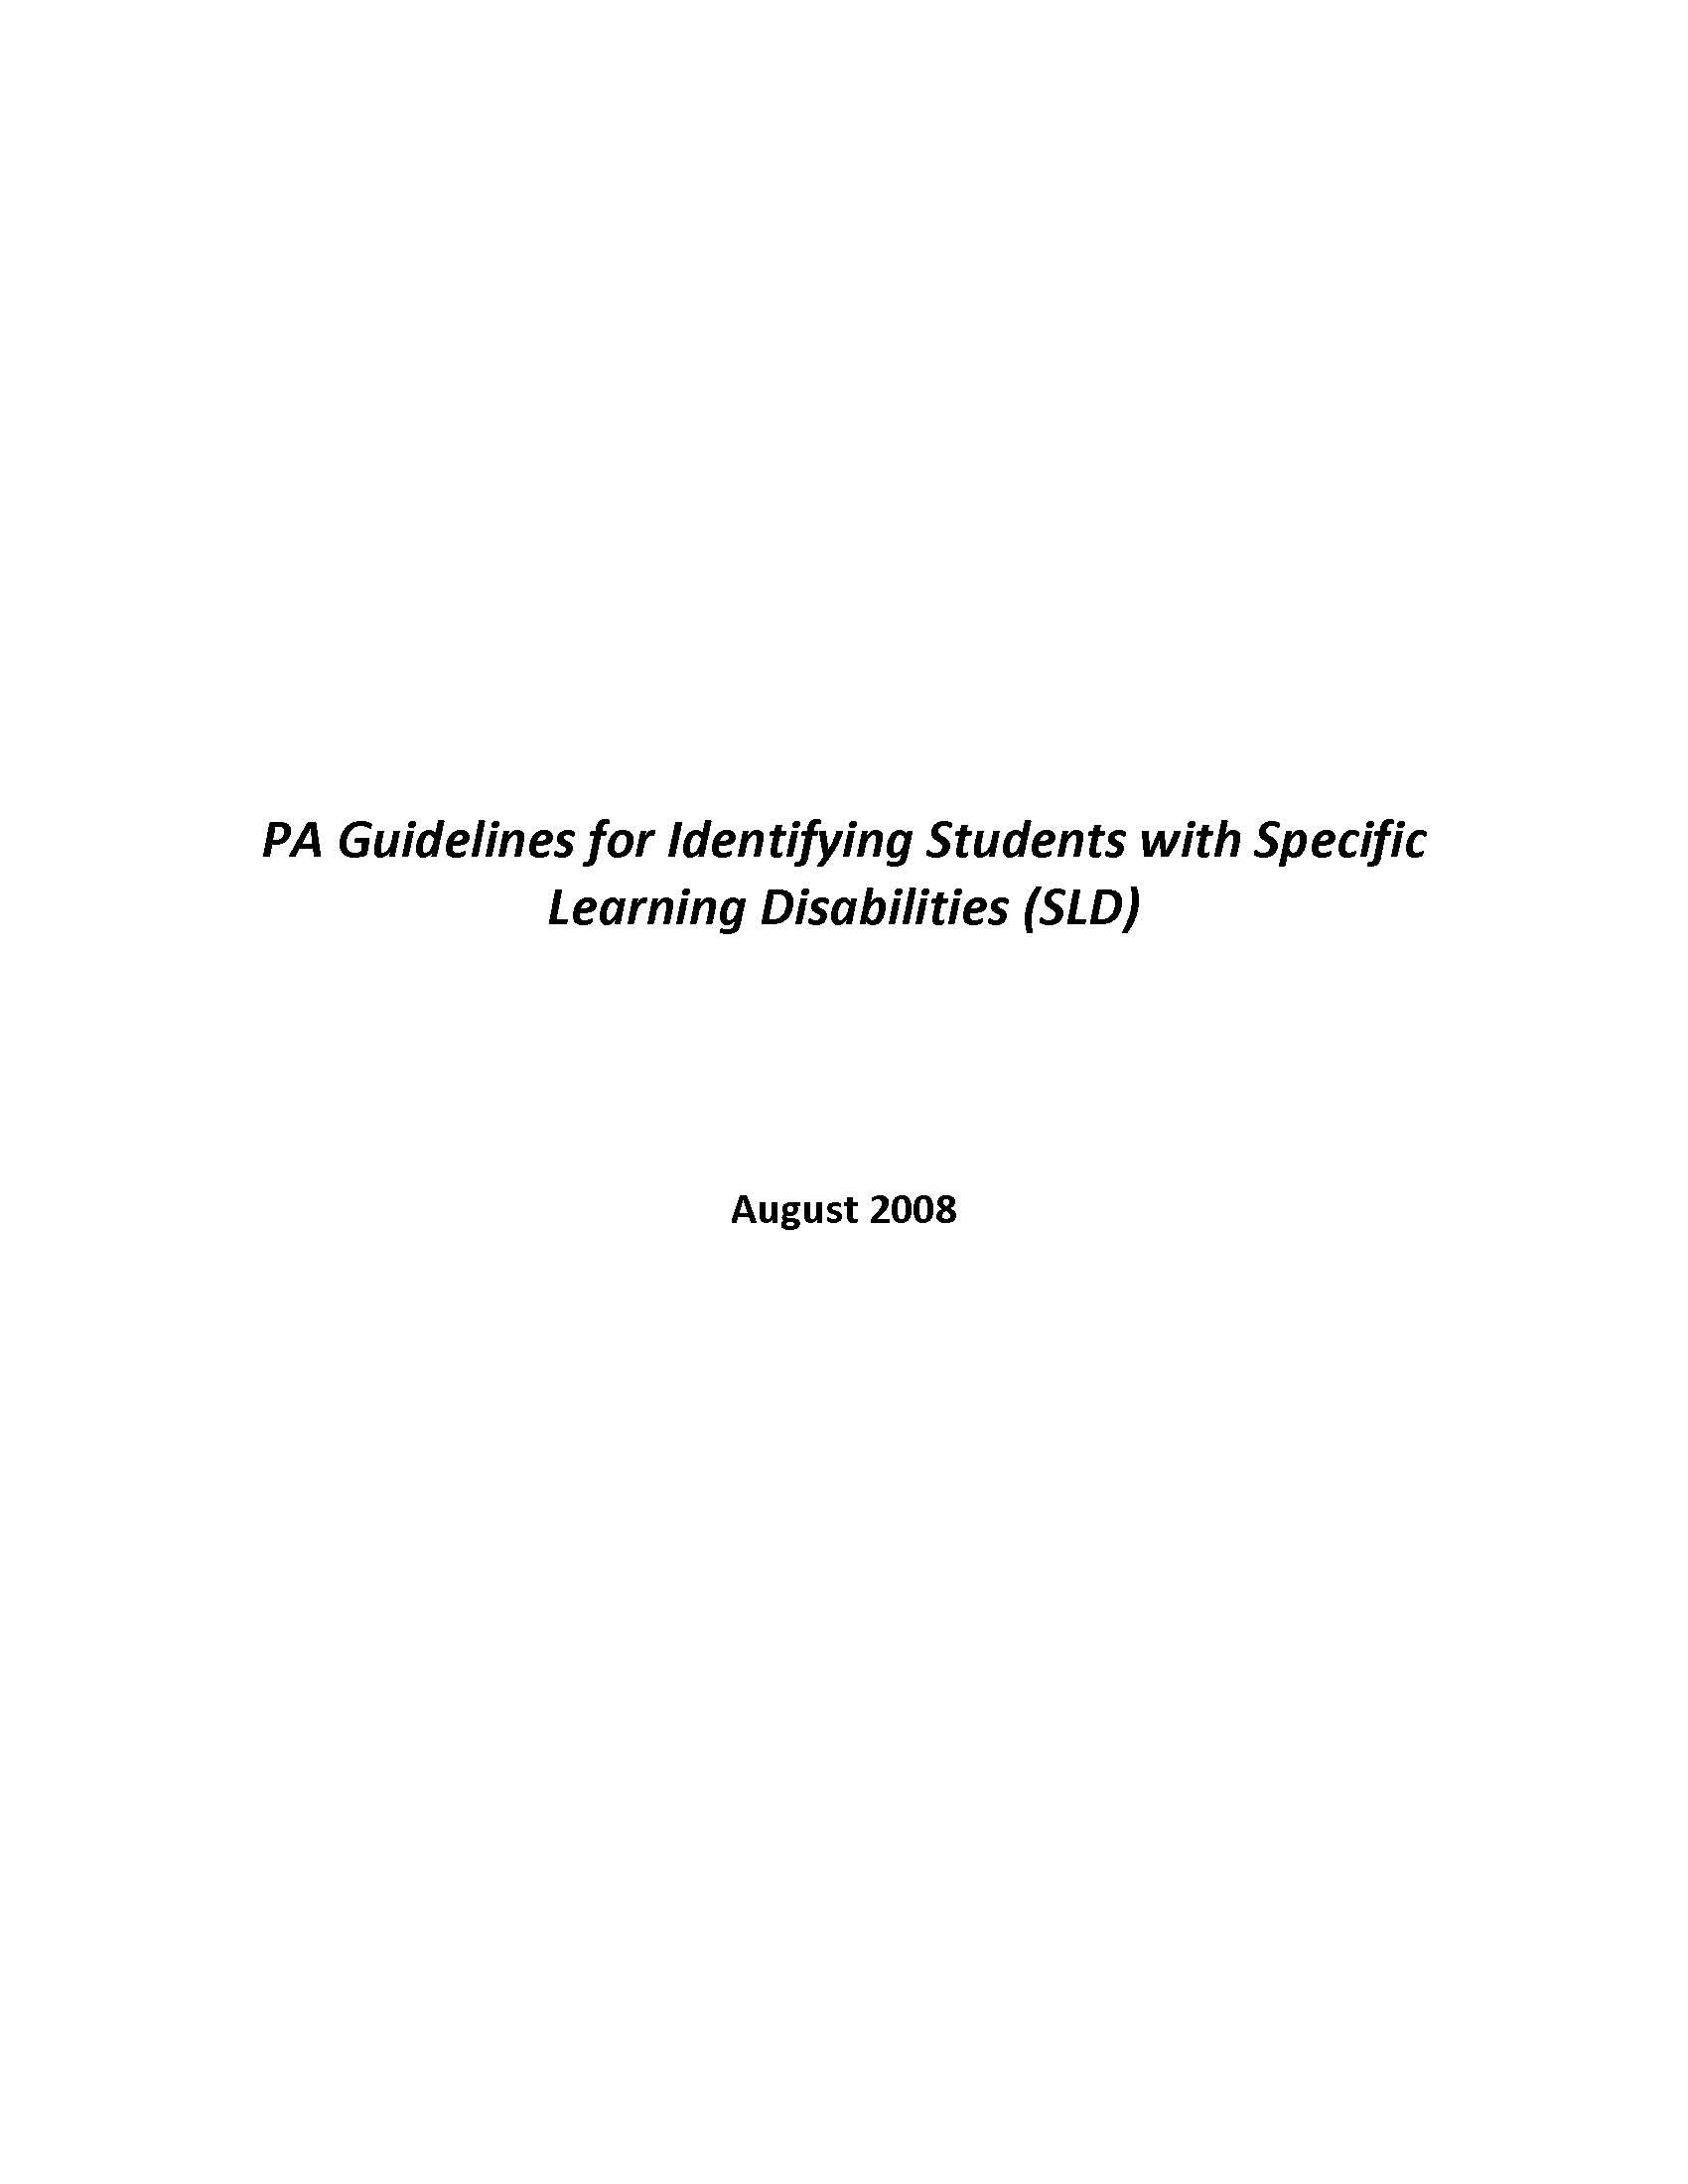 PA Guidelines for Identifying Students with Specific Learning Disabilities (SLD)